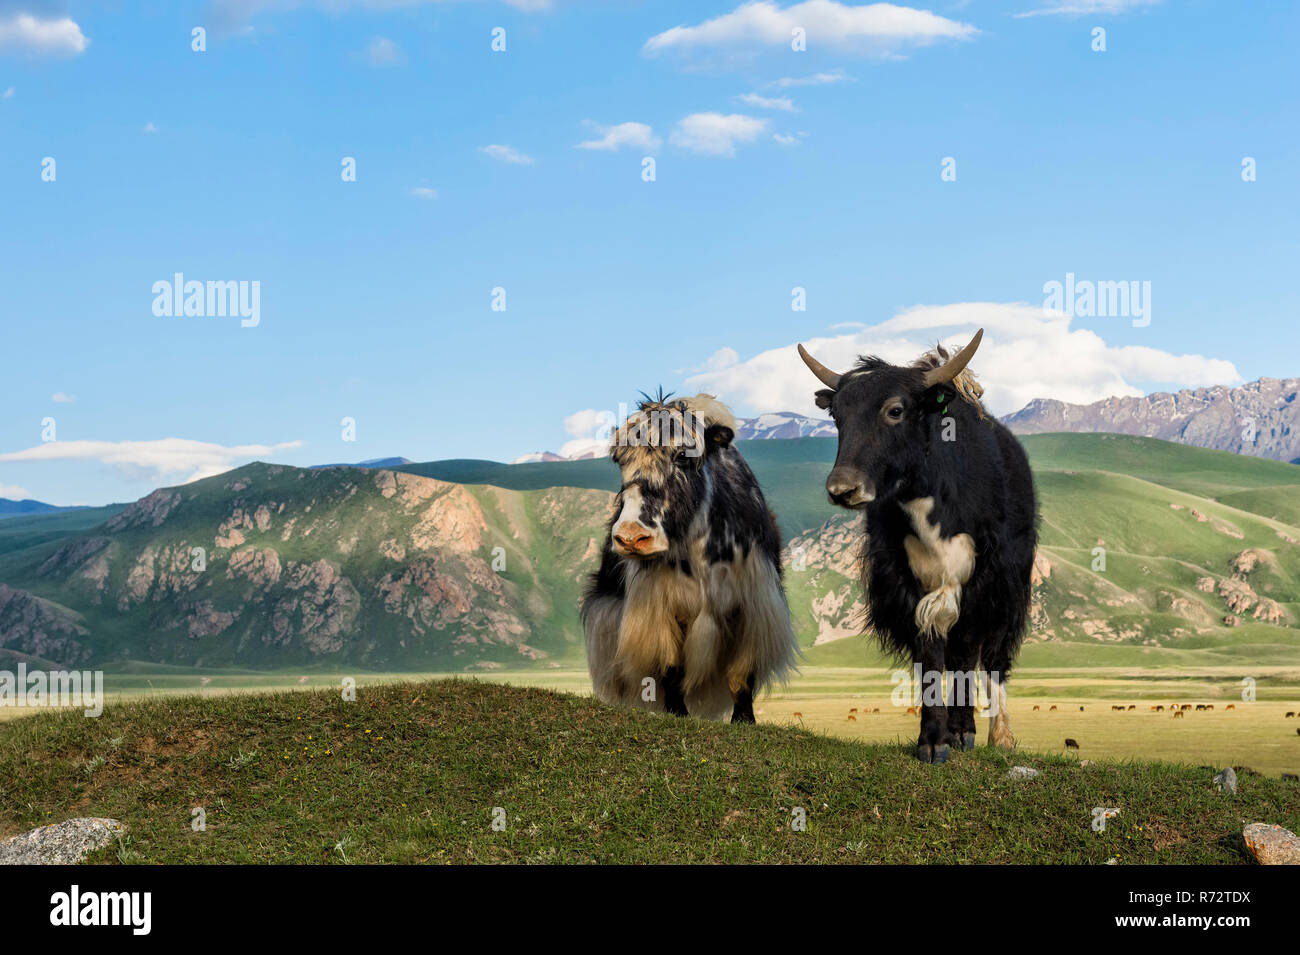 Two Yaks in front of the mountains, Naryn gorge, Naryn Region, Kyrgyzstan - Stock Image